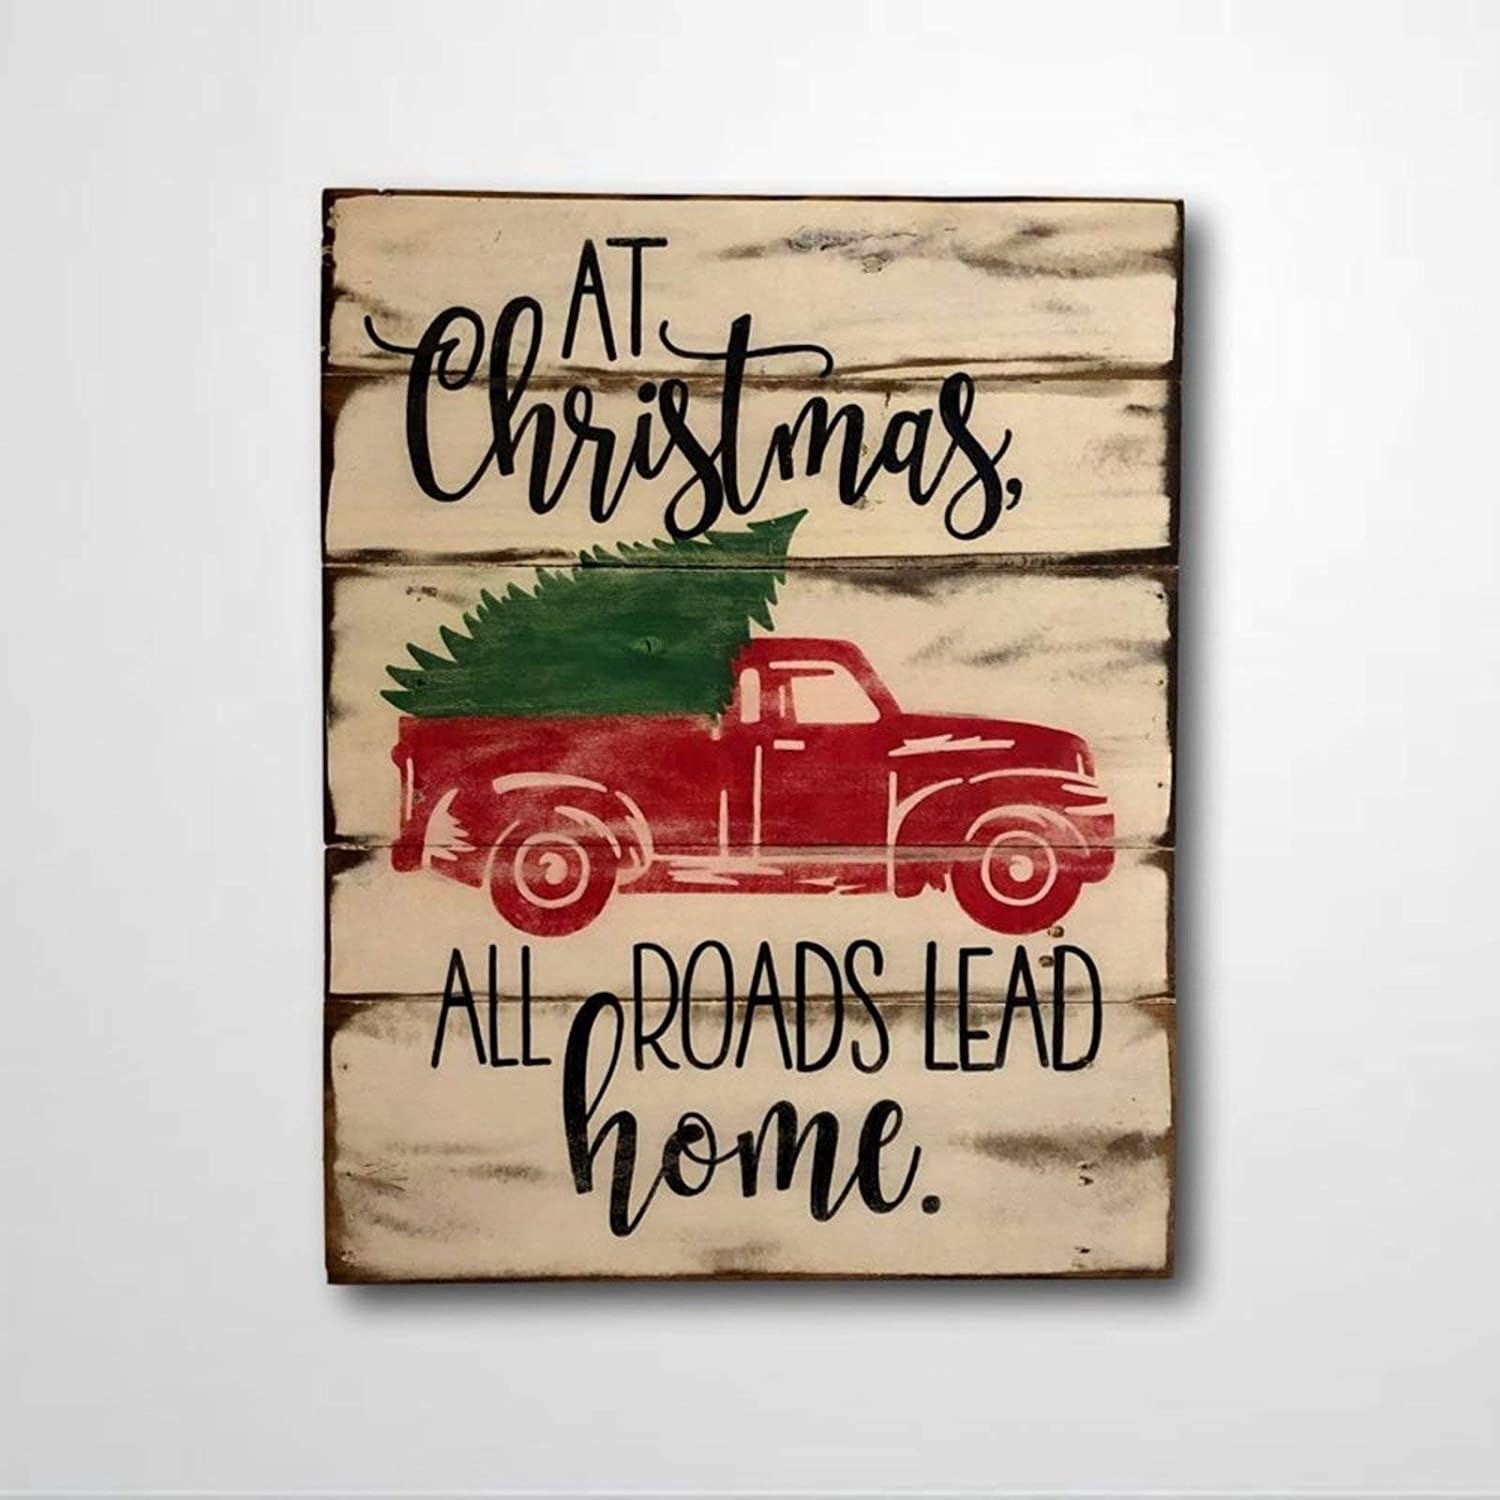 DONL9BAUER at Christmas All Roads Lead Home Wood Sign Farmhouse Christmas Sign Truck Sign Christmas Mantel Decor Wall Hanging Home Decor Indoor Outdoor